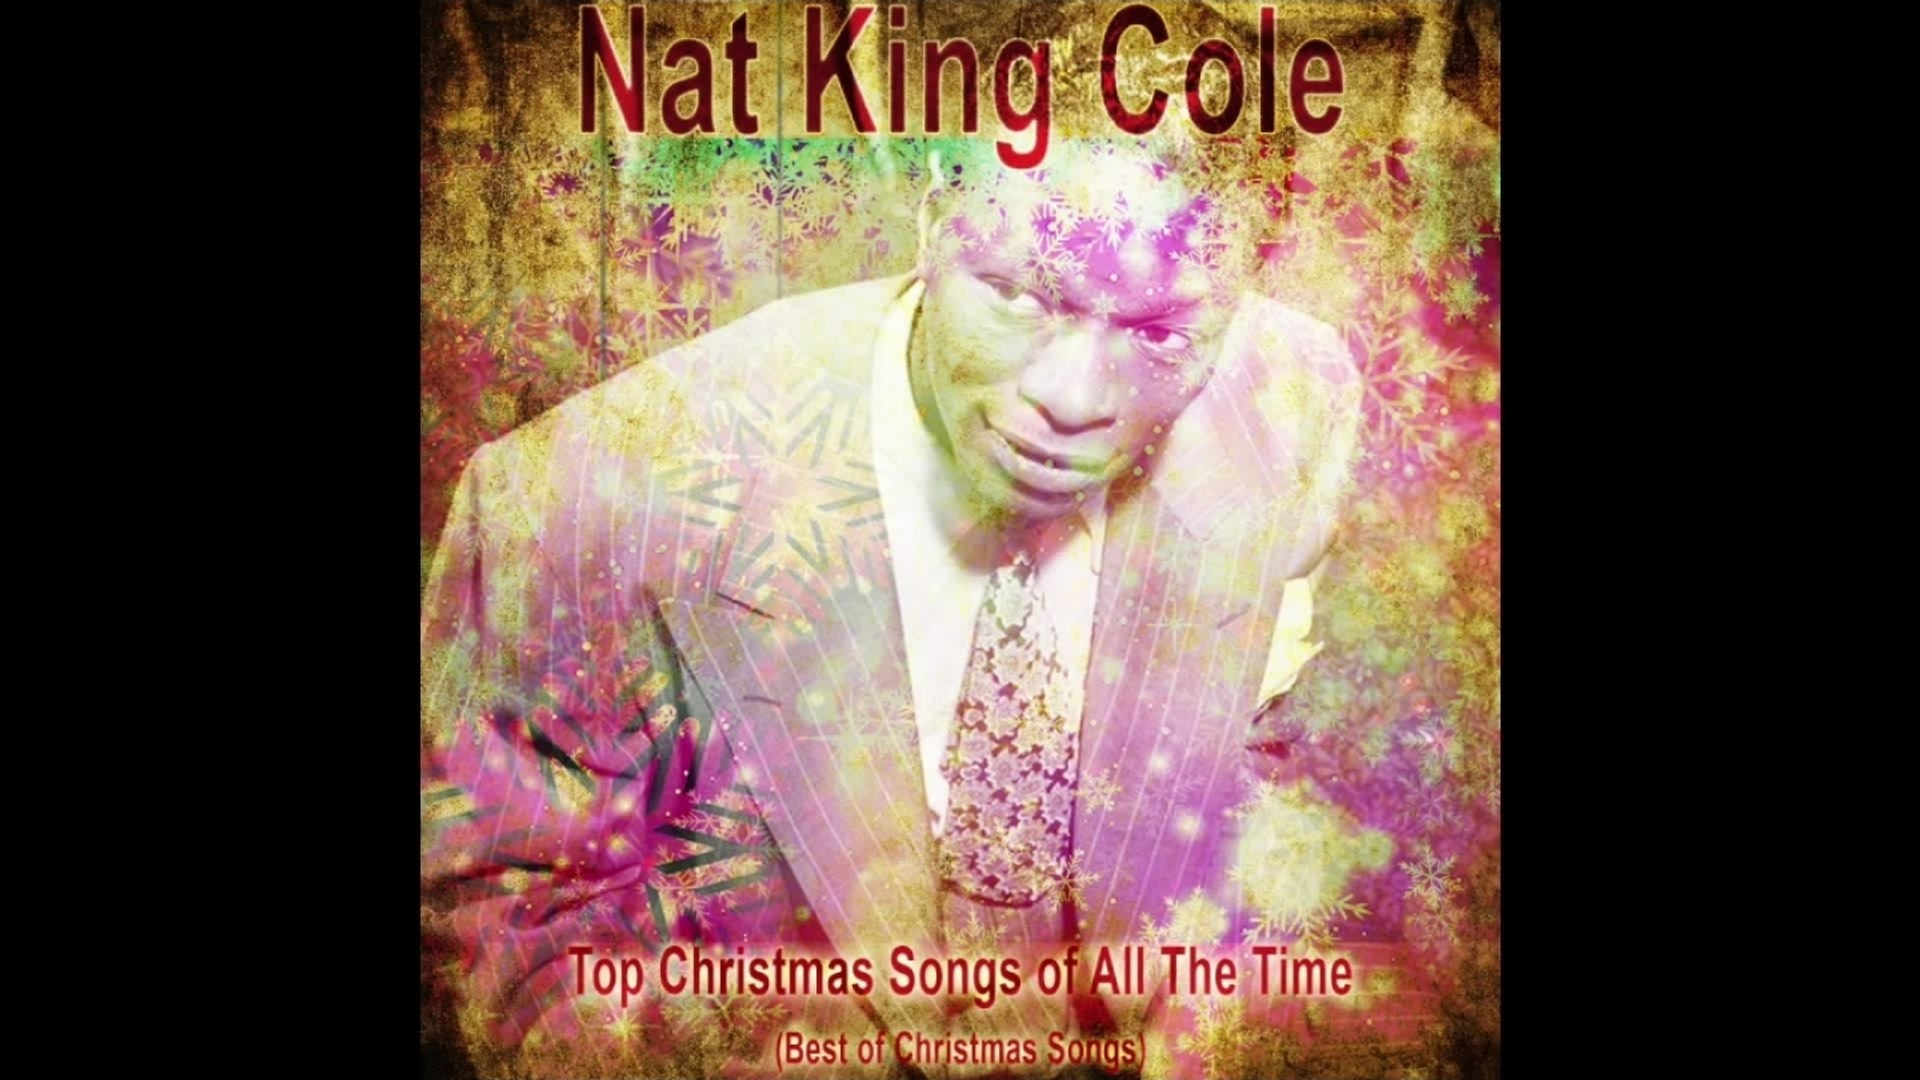 Nat King Cole Christmas.Nat King Cole Top Christmas Songs Of All The Time Best Of Christmas Songs